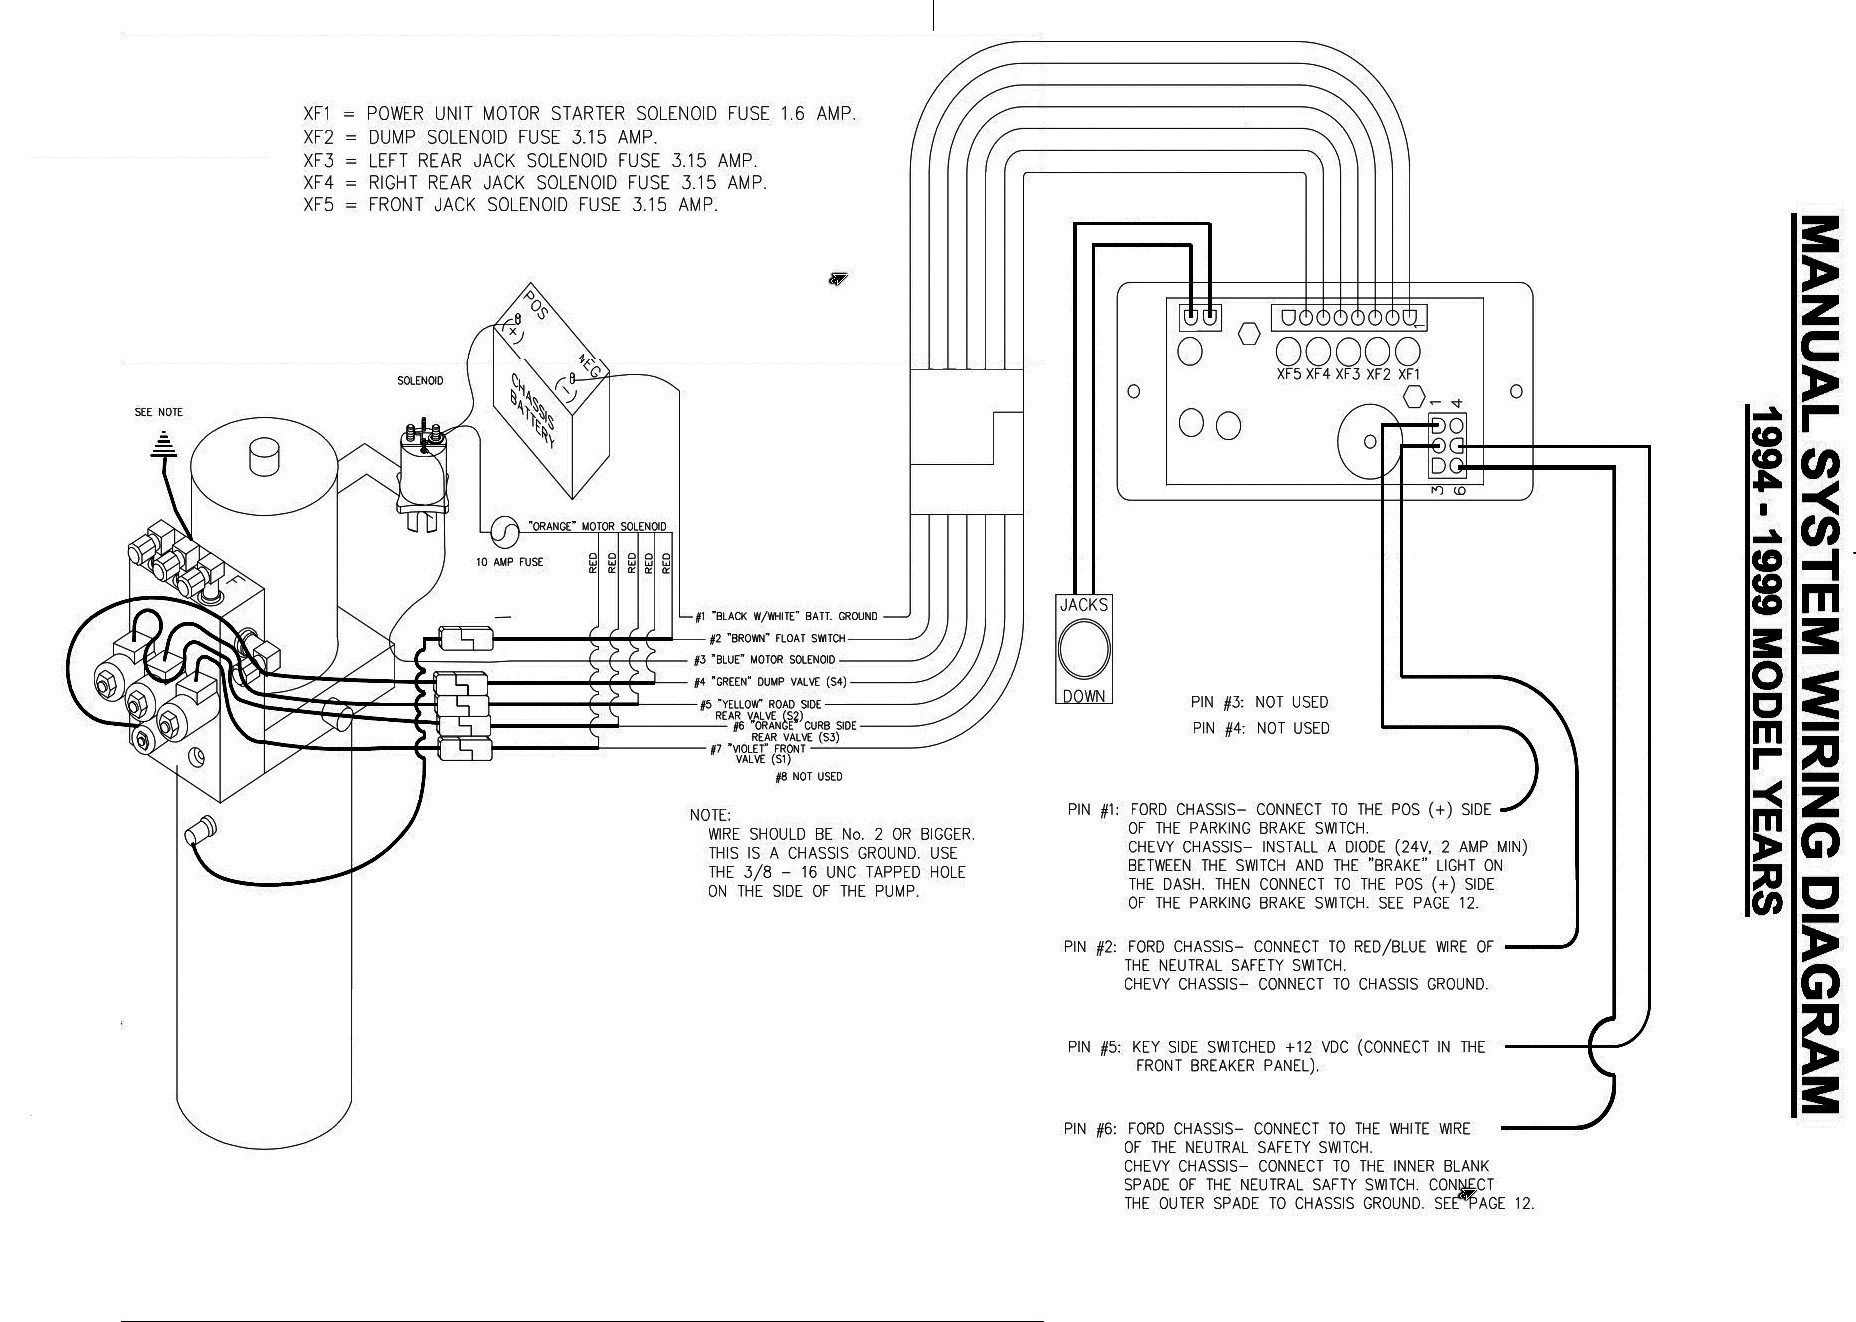 Motorhome Wiring Diagram Tiffin